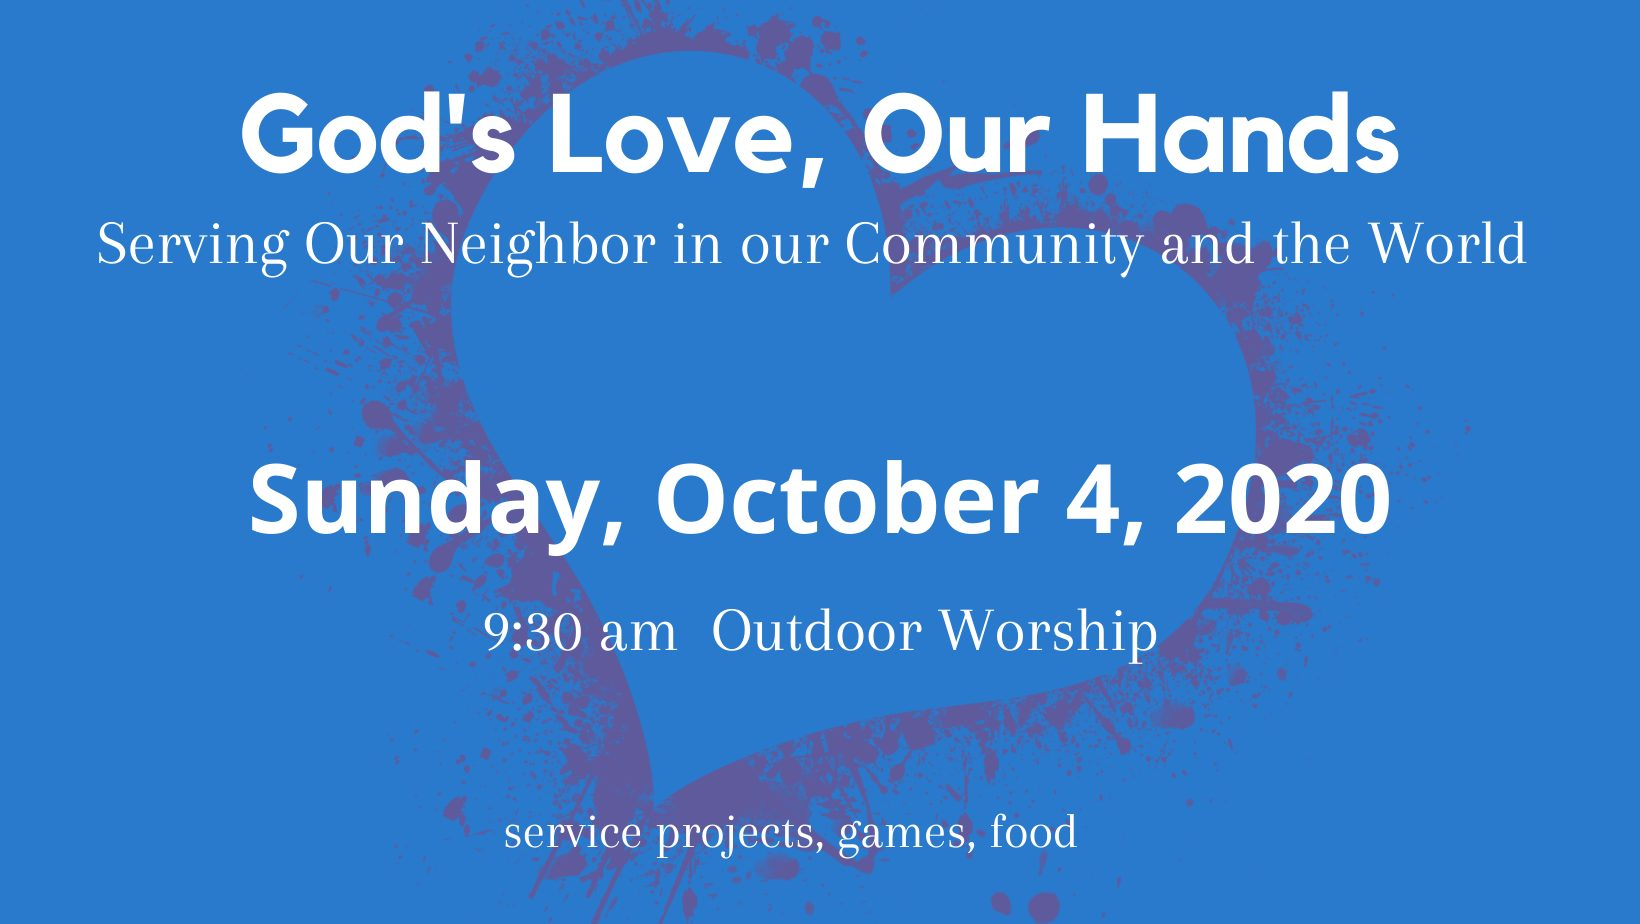 God's Love, Our Hands